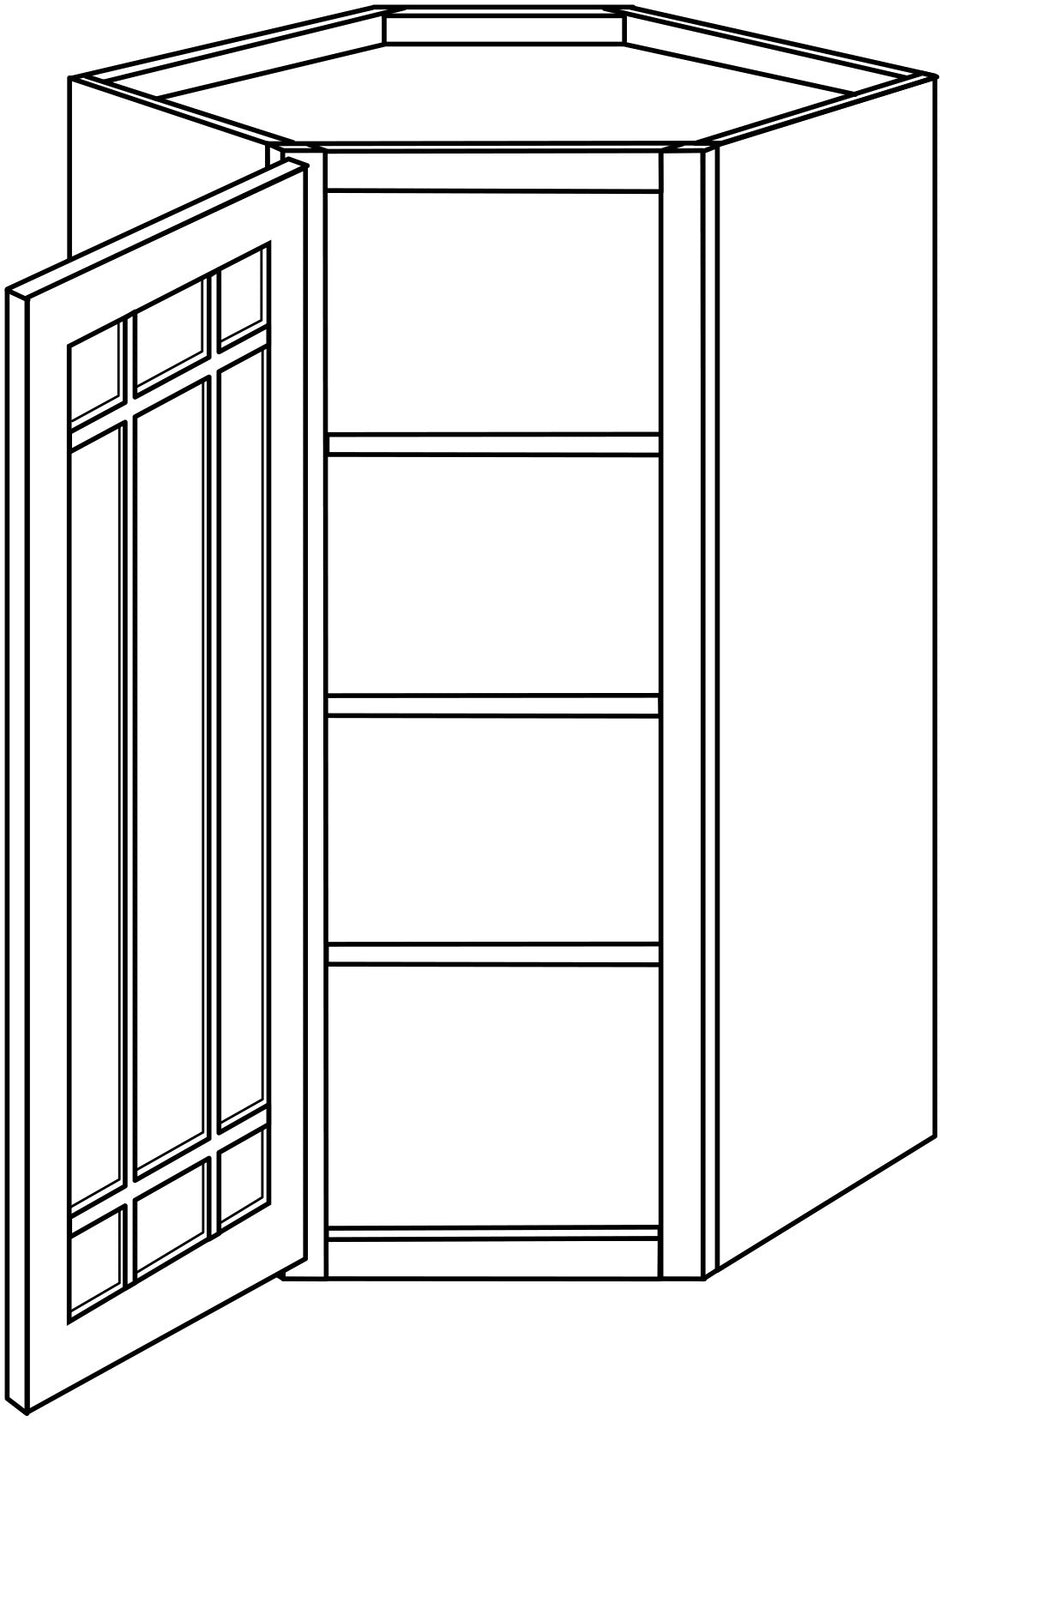 DOVER WALL CABINETS WITH GLASS DOORS: 42